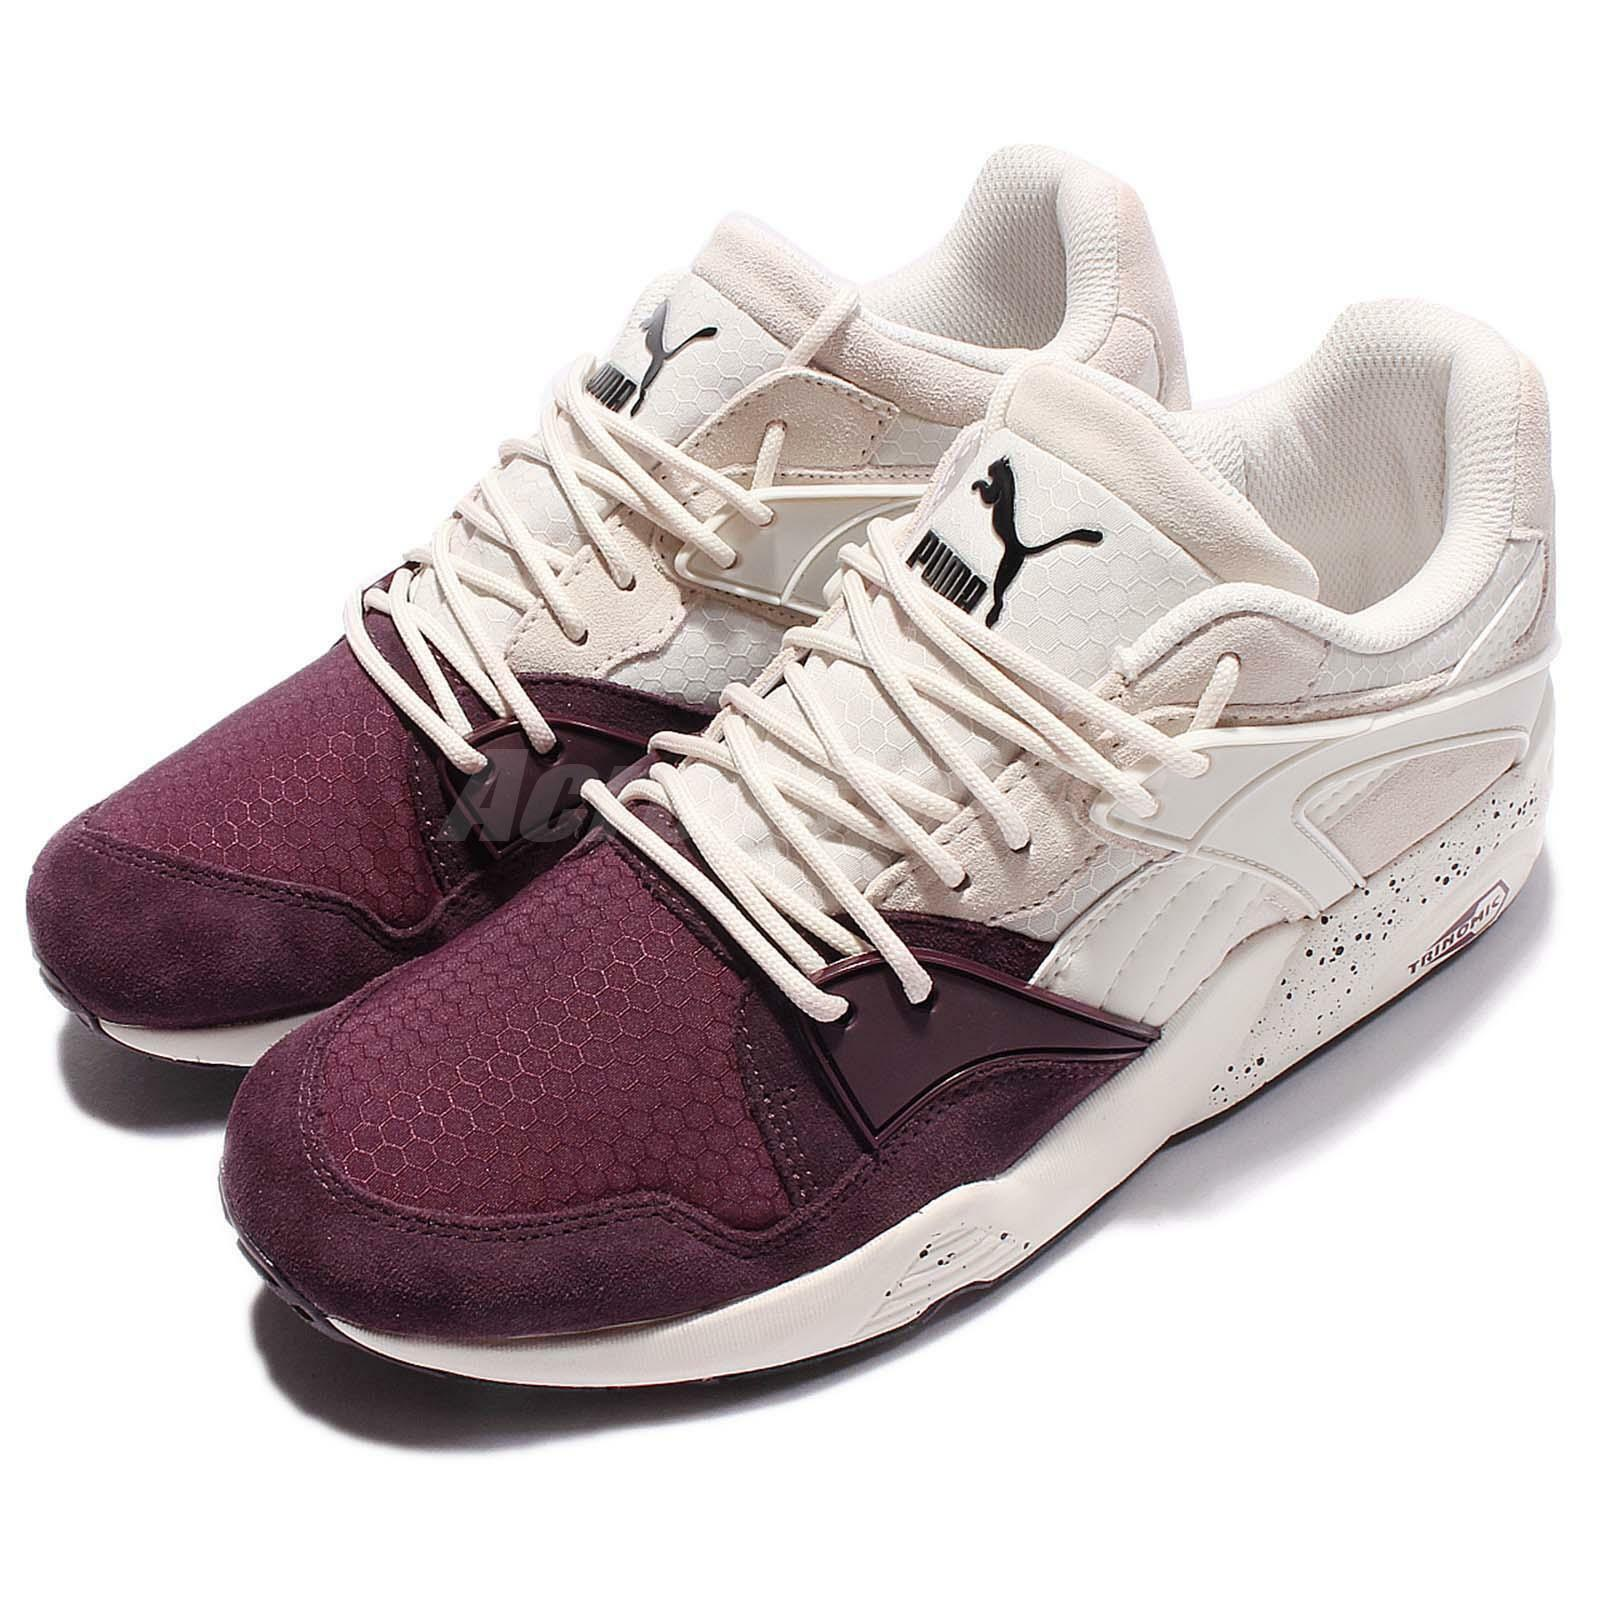 Puma Trinomic Blaze Winter Tech Trainers White Purple Men Running Shoe 361341-03